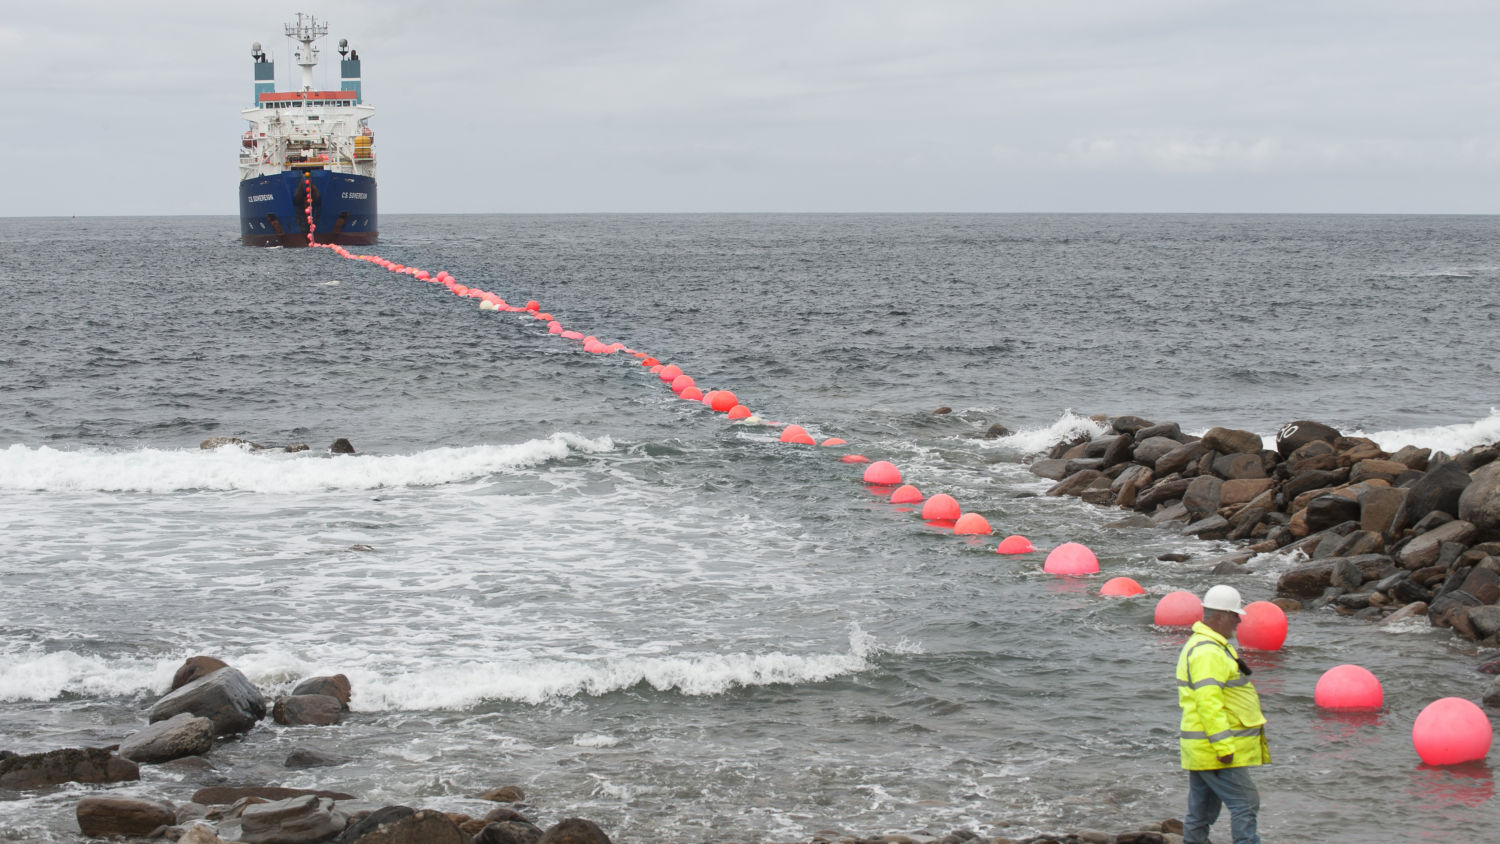 Cable-laying-at-EMEC-test-site-Credit-Mike-Brookes-Roper-courtesy-of-EMEC-_M5R9197-HR_16x9